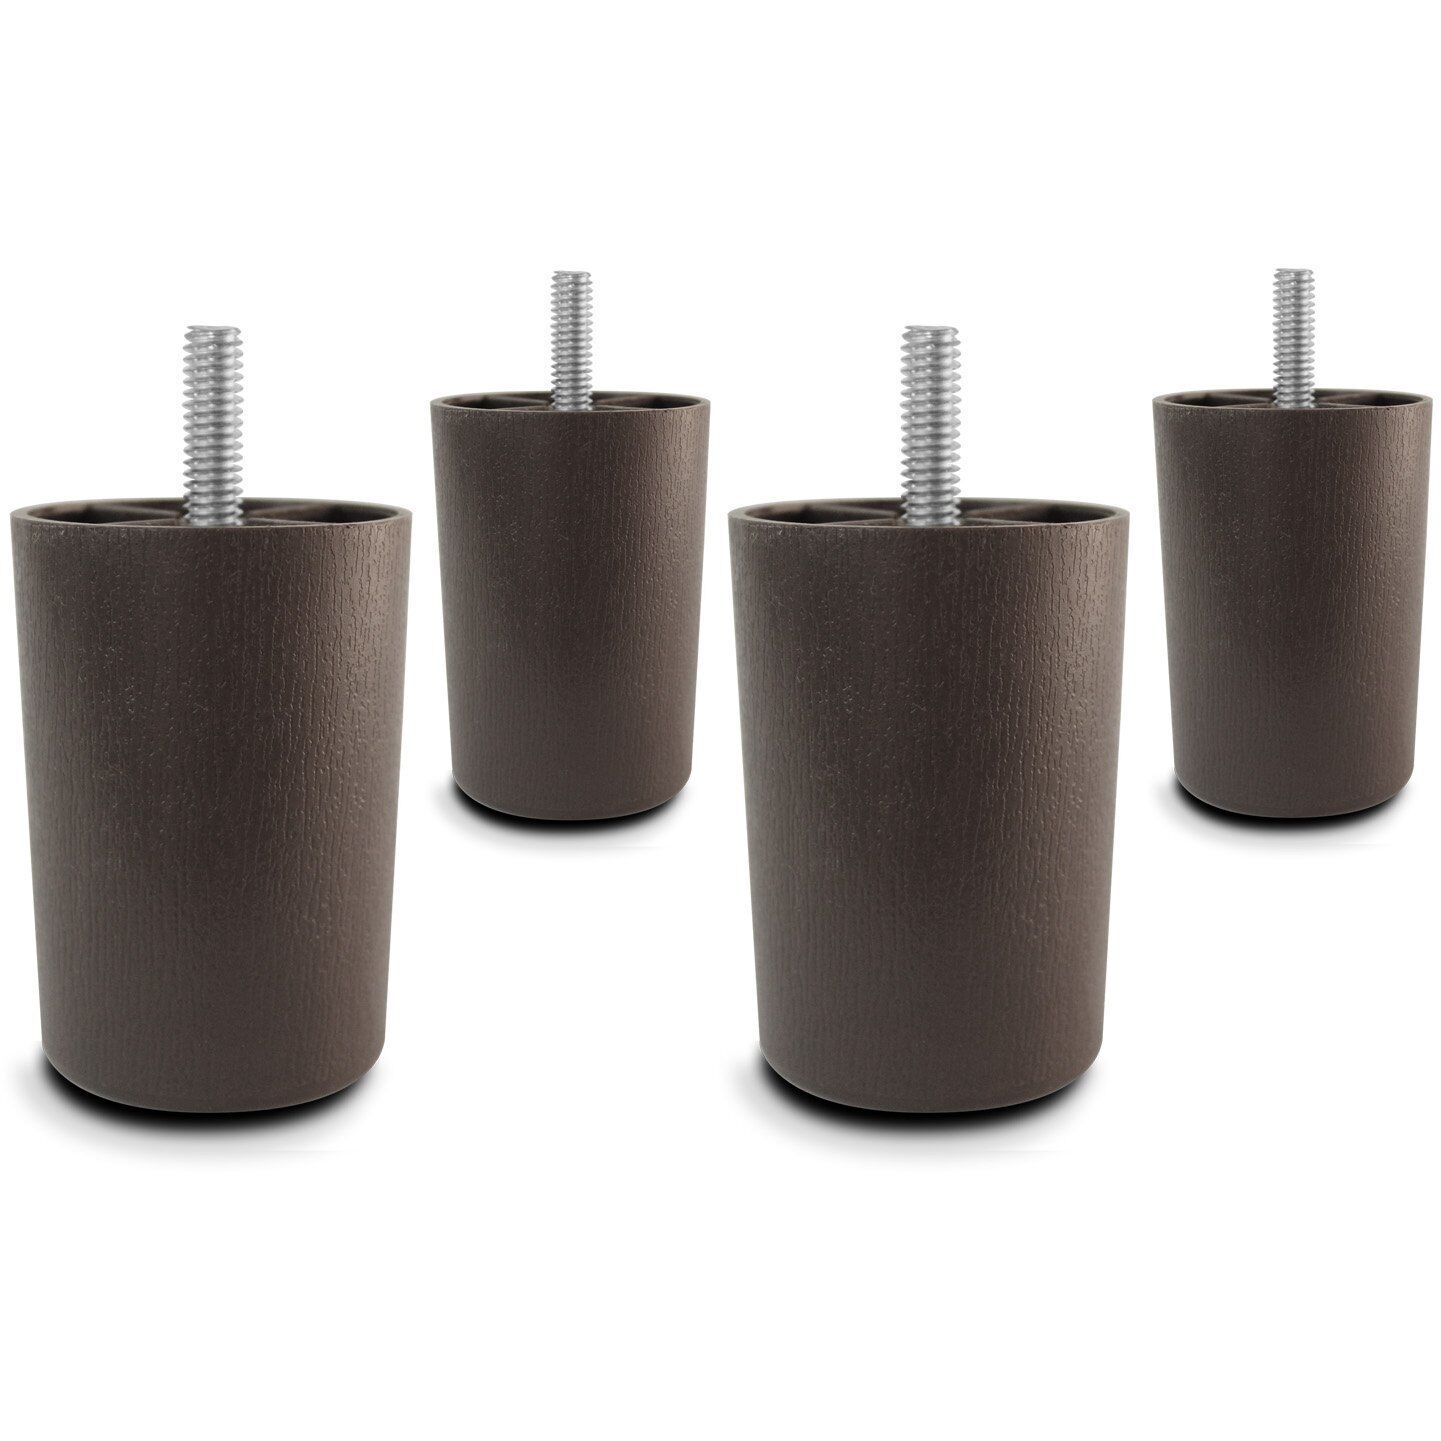 3″ Universal Brown Plastic Furniture Legs Sofa/Couch/Chair 5/16″ – Set of 4 Furniture